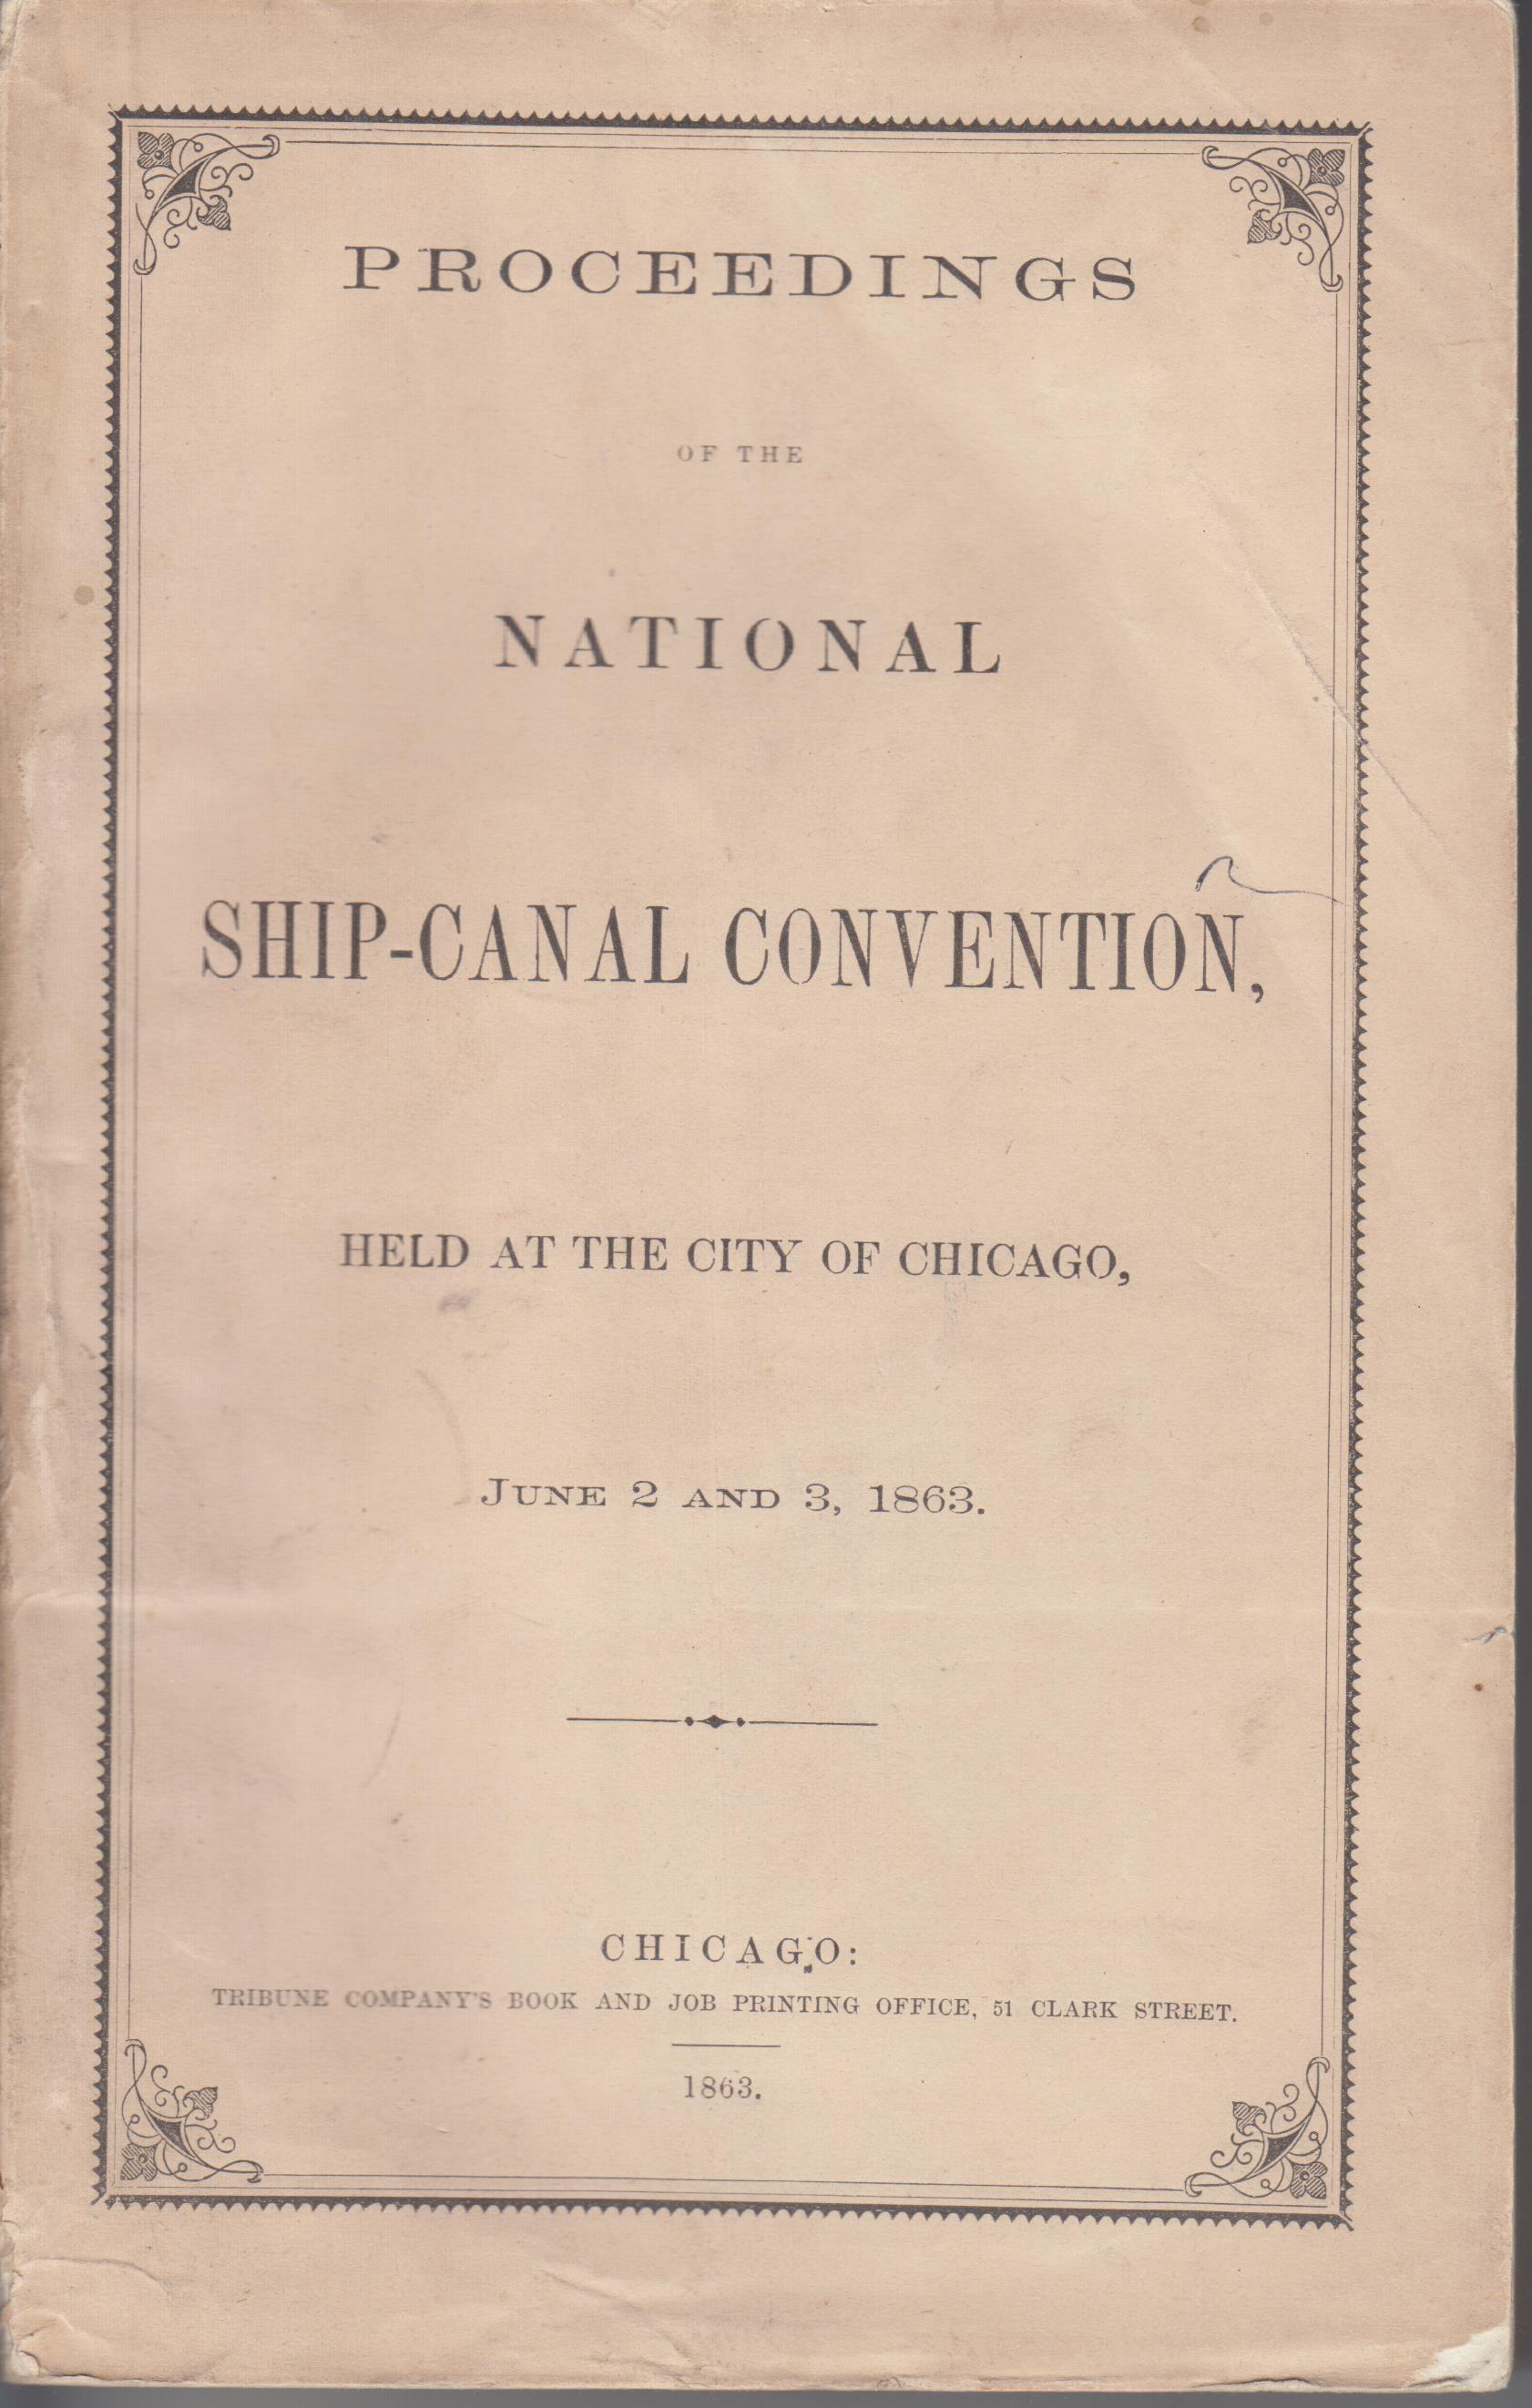 Image for Proceedings Of The National Ship-Canal Convention, Held at the City of Chicago, Jun 2 and 3, 1863